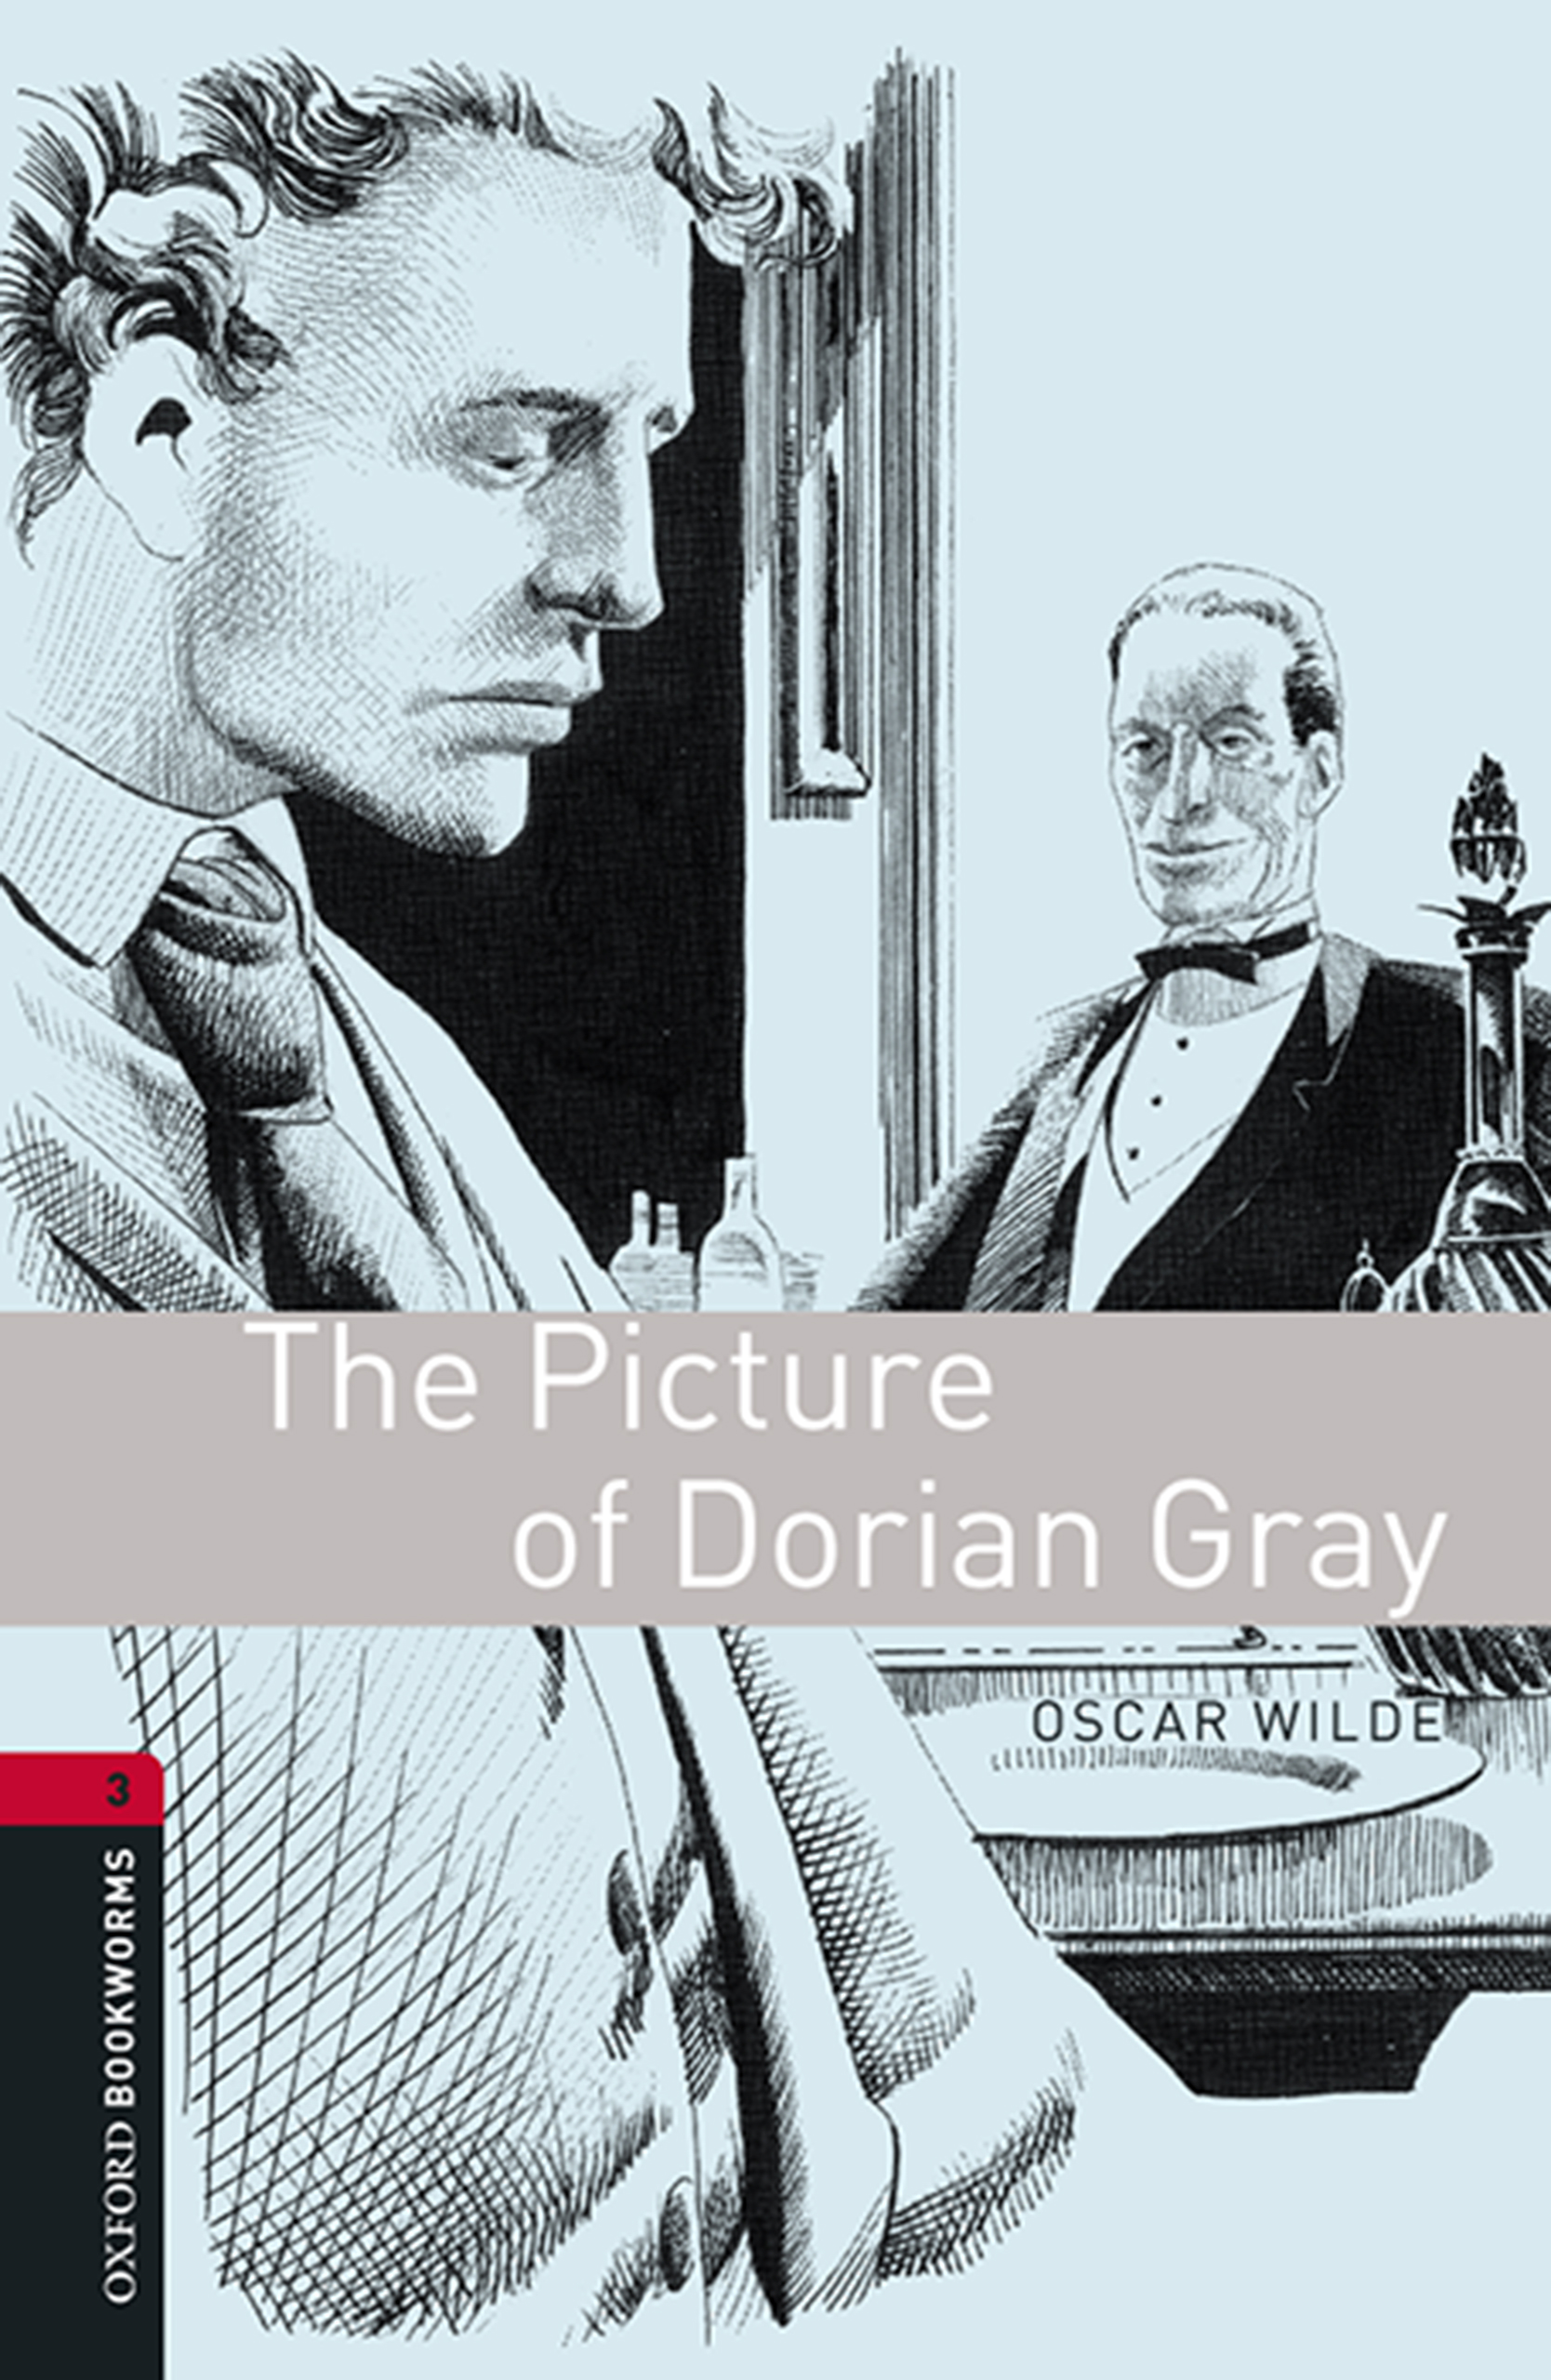 цена на Оскар Уайльд The Picture of Dorian Gray